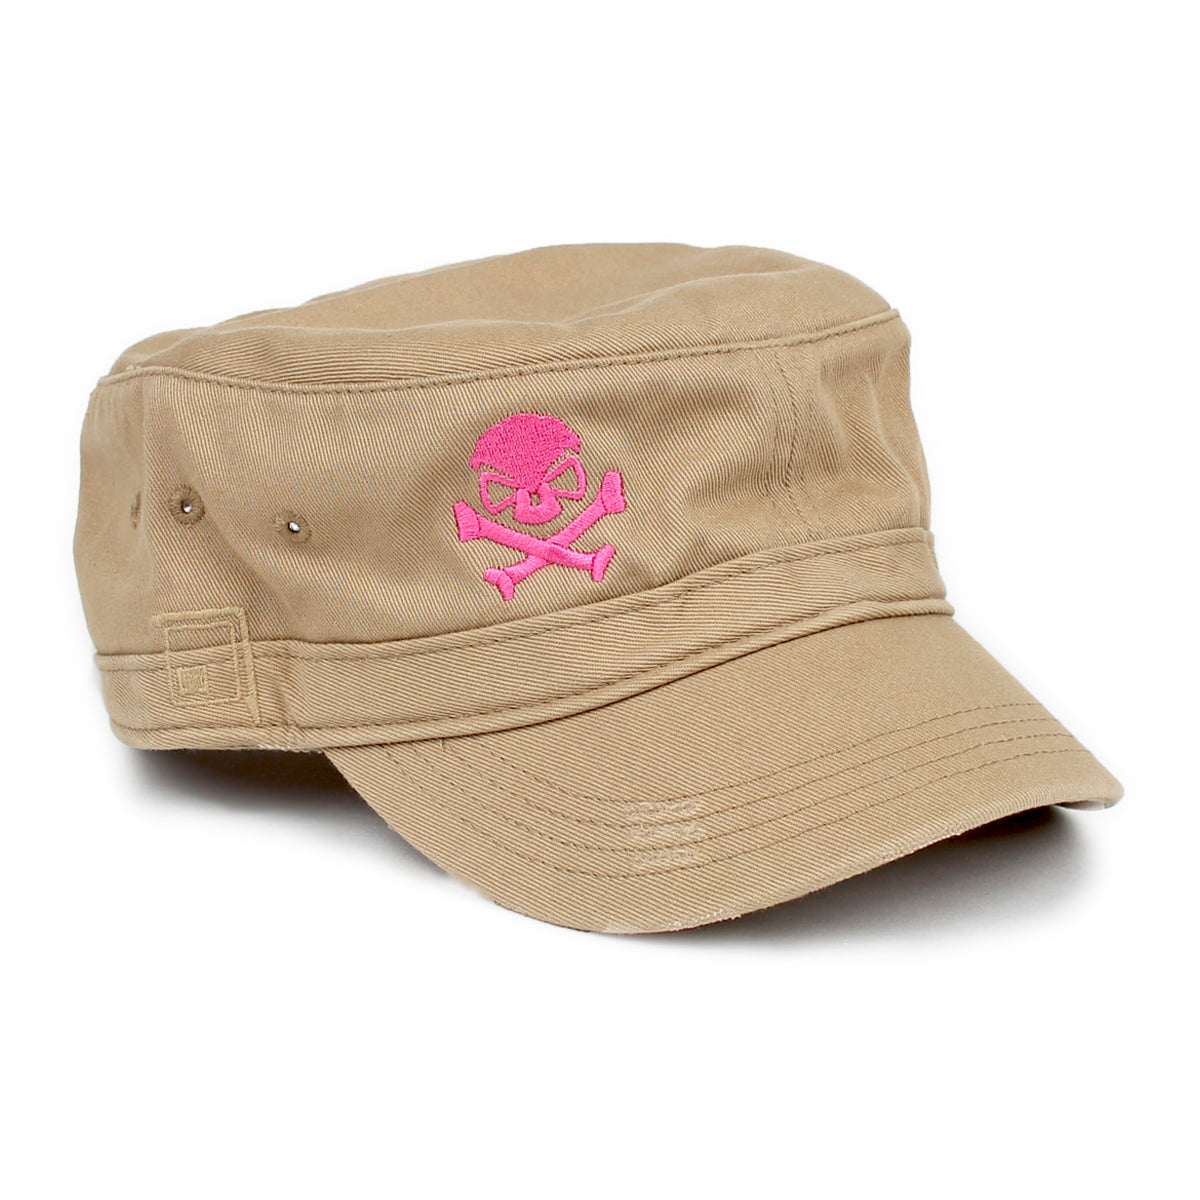 Cadet Cap - Khaki/Pink - Hats - Pipe Hitters Union